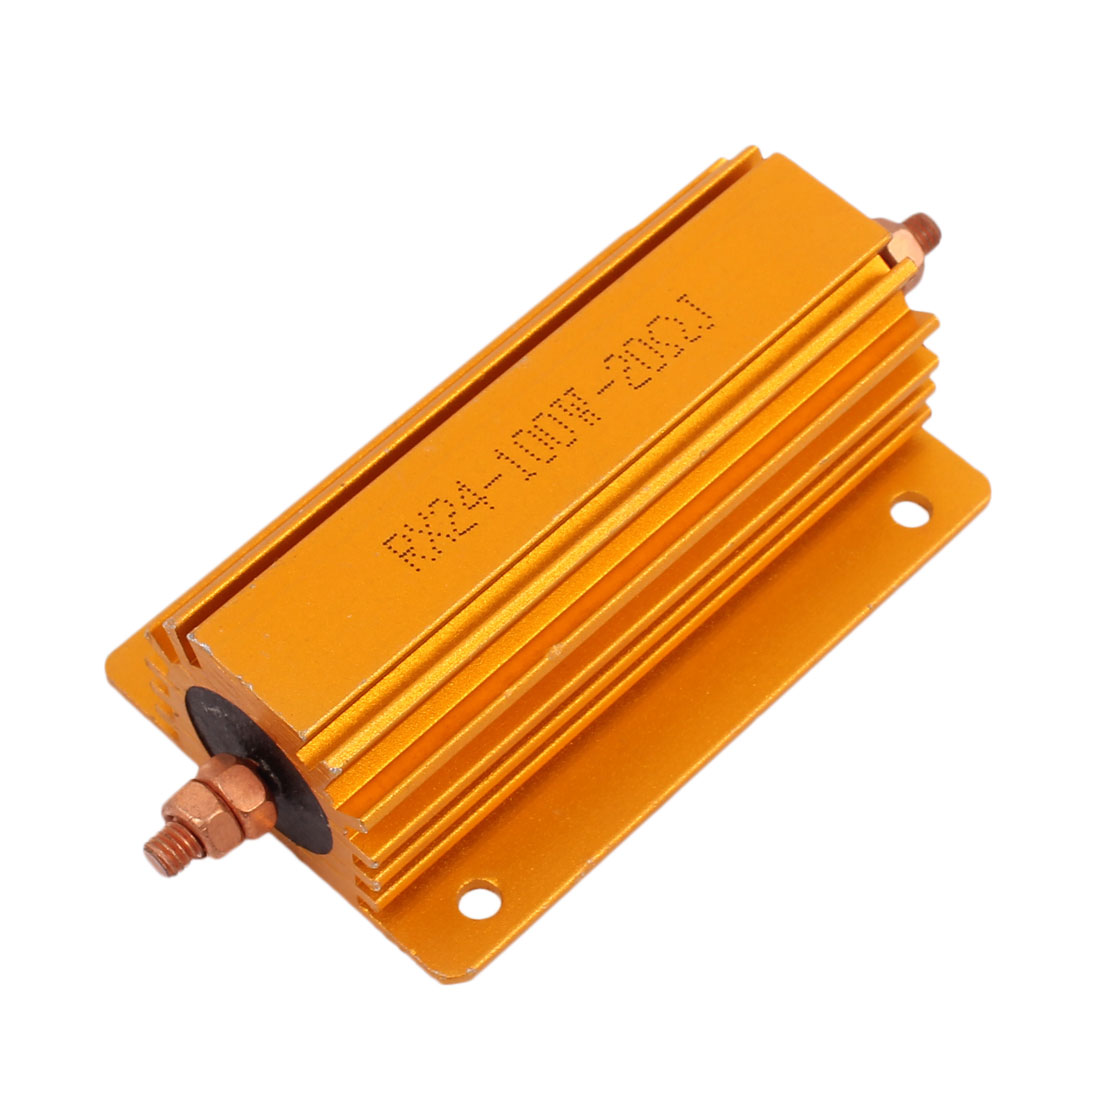 100W 20 Ohm Gold Tone Chassis Mounted Aluminum Shell Clad Resistor